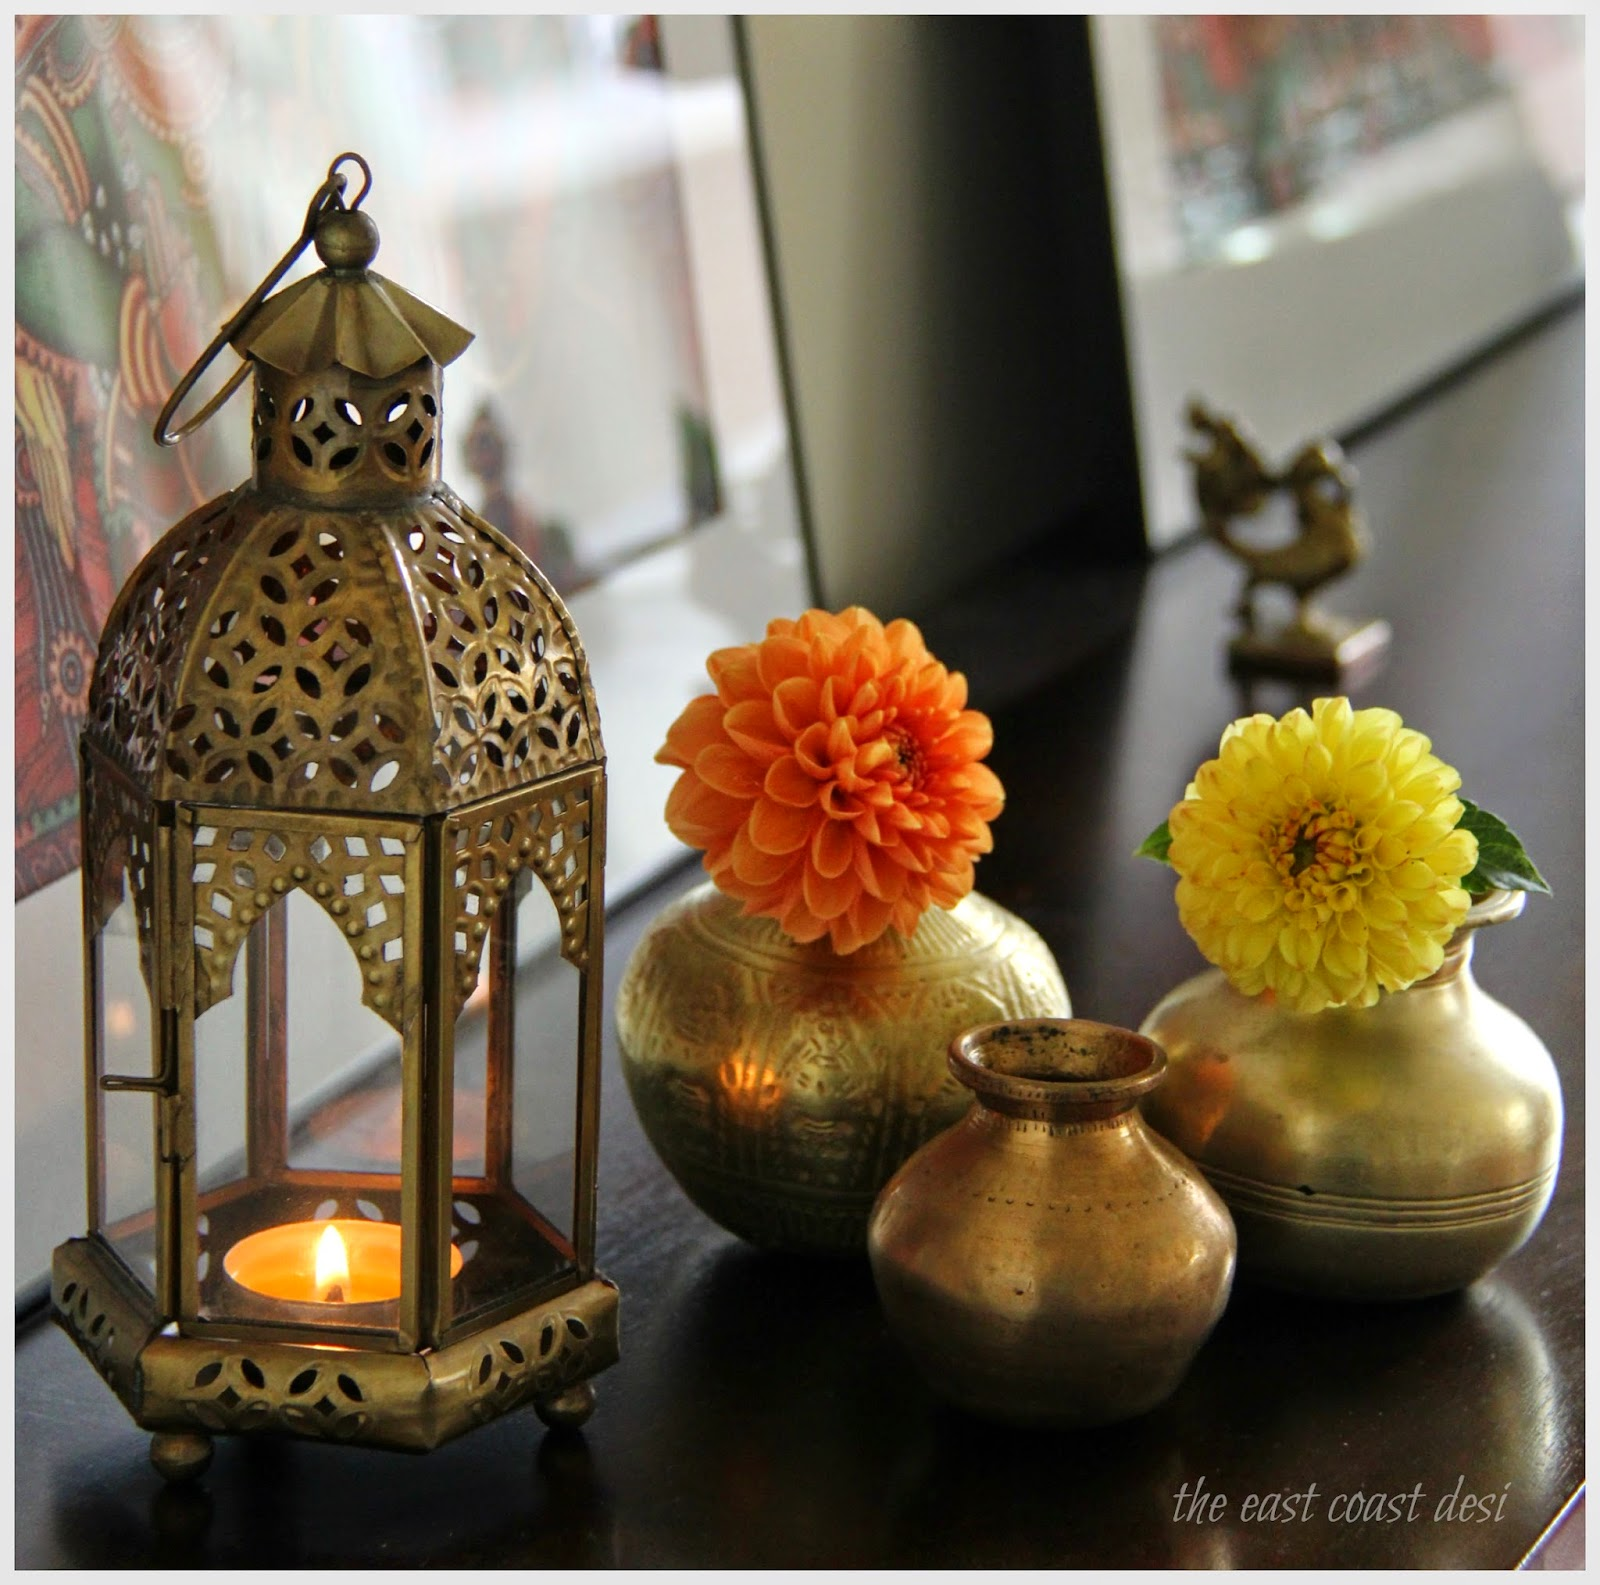 2017 Diwali Home Decor: Best Diwali Party Theme Ideas